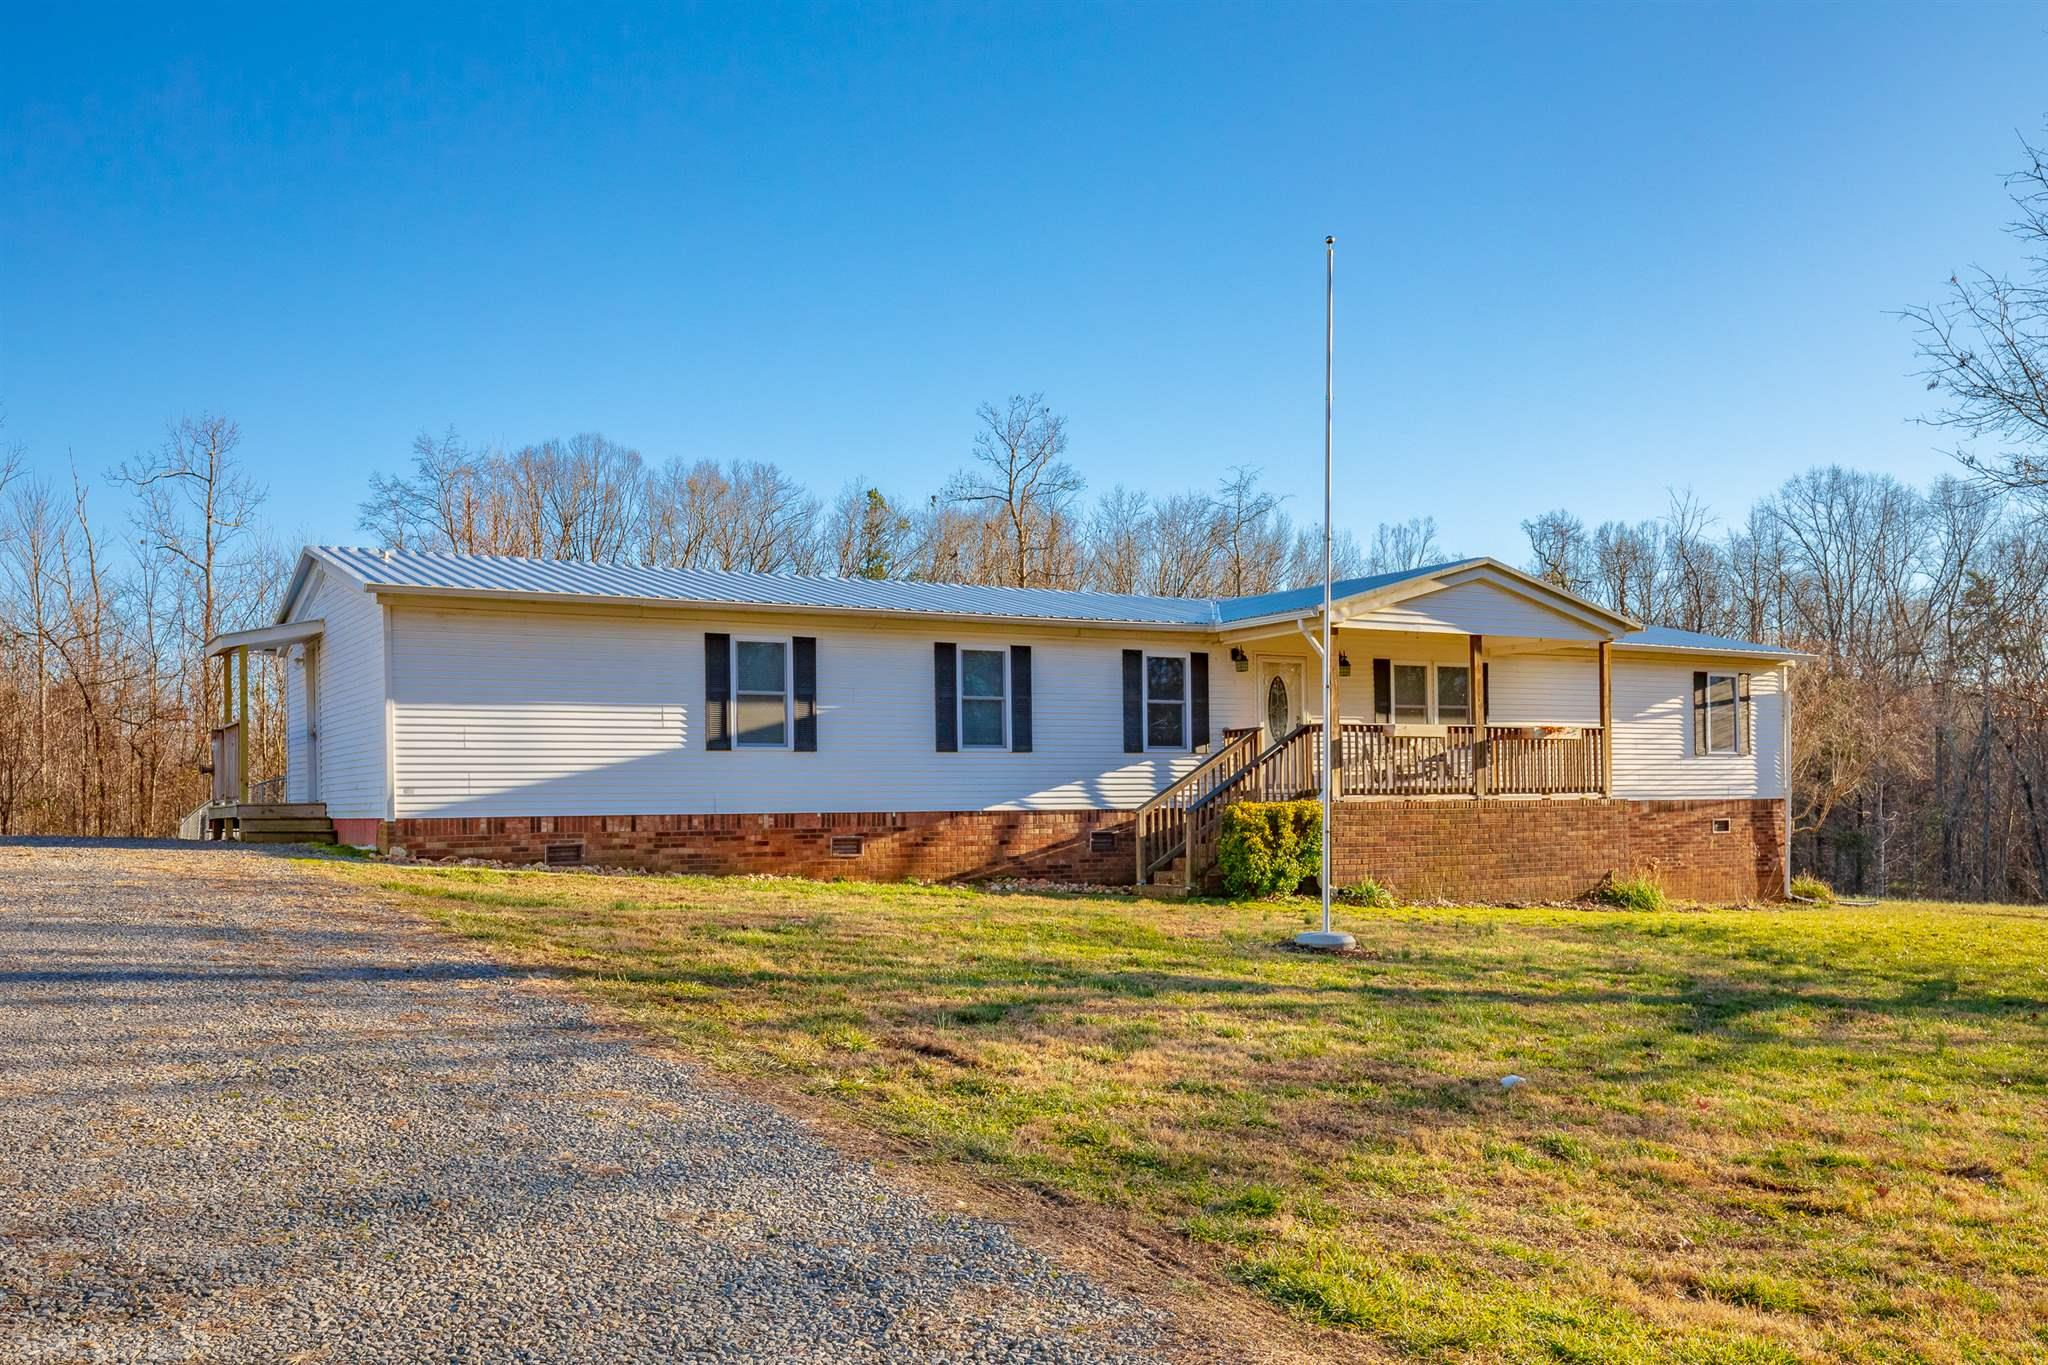 Very nice updated home move-in ready for the entire family with nearly 2.5 acres of flat land. NEW DETACHED 3 BAY 30x40 GARAGE with concrete flooring, 10x10 doors, wood stove included and power to hook up welders and/or compressors. Inside you have newly updated kitchen with soft close cabinets, granite countertops, tile backsplash and new flooring. Eat in kitchen as well as a formal dining area. Newly remodeled master bath with standup shower and walk in master closet and a linen closet, newly updated second bath with full size tub. New flooring in nearly every room. All new insulated windows with single screens. New metal roof in 2018. Cable and high speed internet! Outside a wooden play set with play house and also a patriotic flag pole in front of a covered porch. Under the home you have pipes protected from freezing in the event the weather drops below 39 deg. it automatically comes on to heat up the area. Out back there is a chain link fence with gate to keep your animals in.